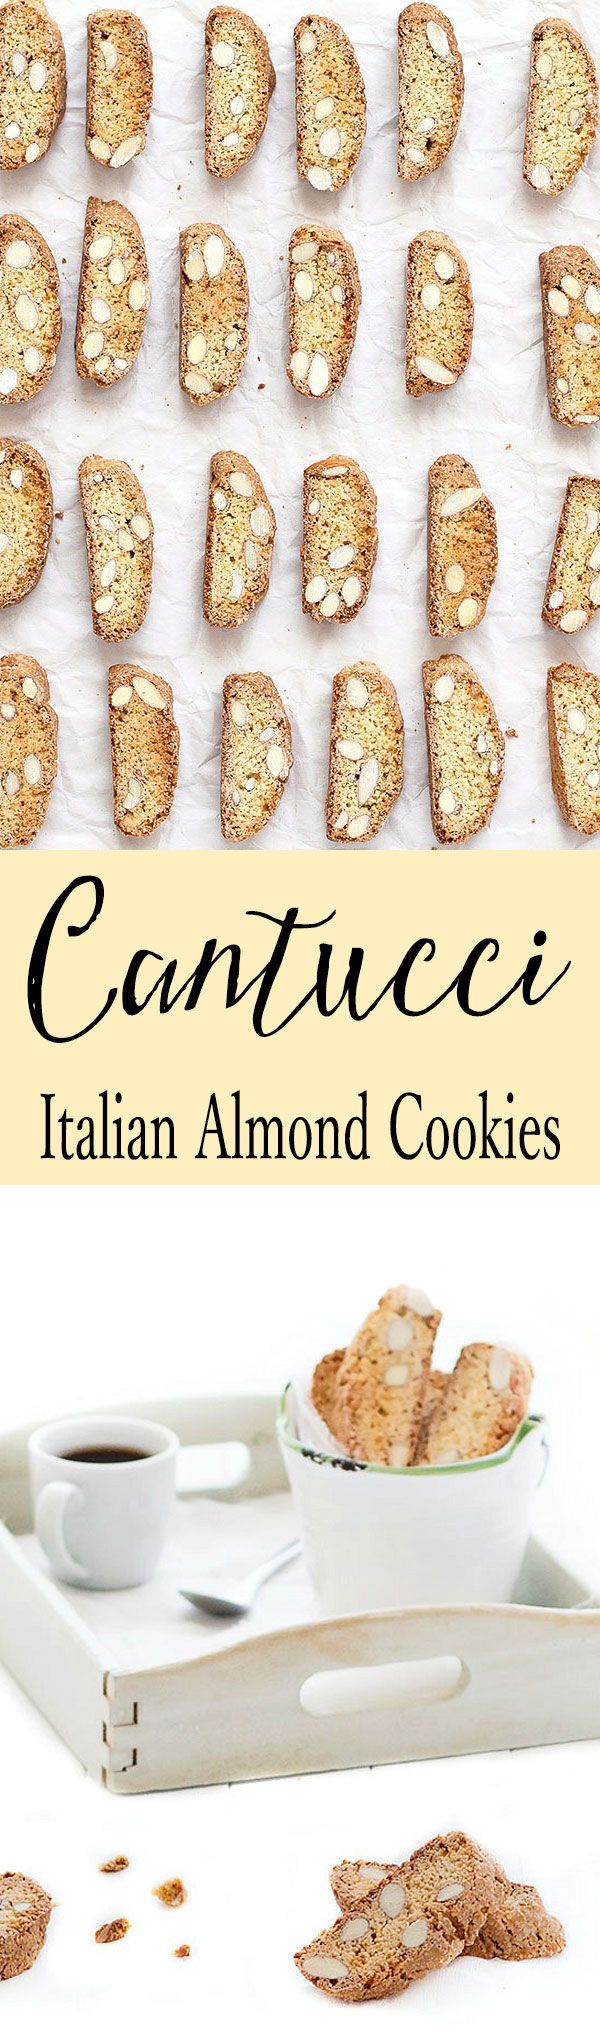 Cantucci are crunchy almond Italian cookies. They have no butter and no oil ...feel good about eating more than one! Replace almonds with chocolate chips, hazelnuts, pistachios or dried fruits. The possibilities are endless. These cookies last for several weeks and they are also perfect to give as a homemade gift.